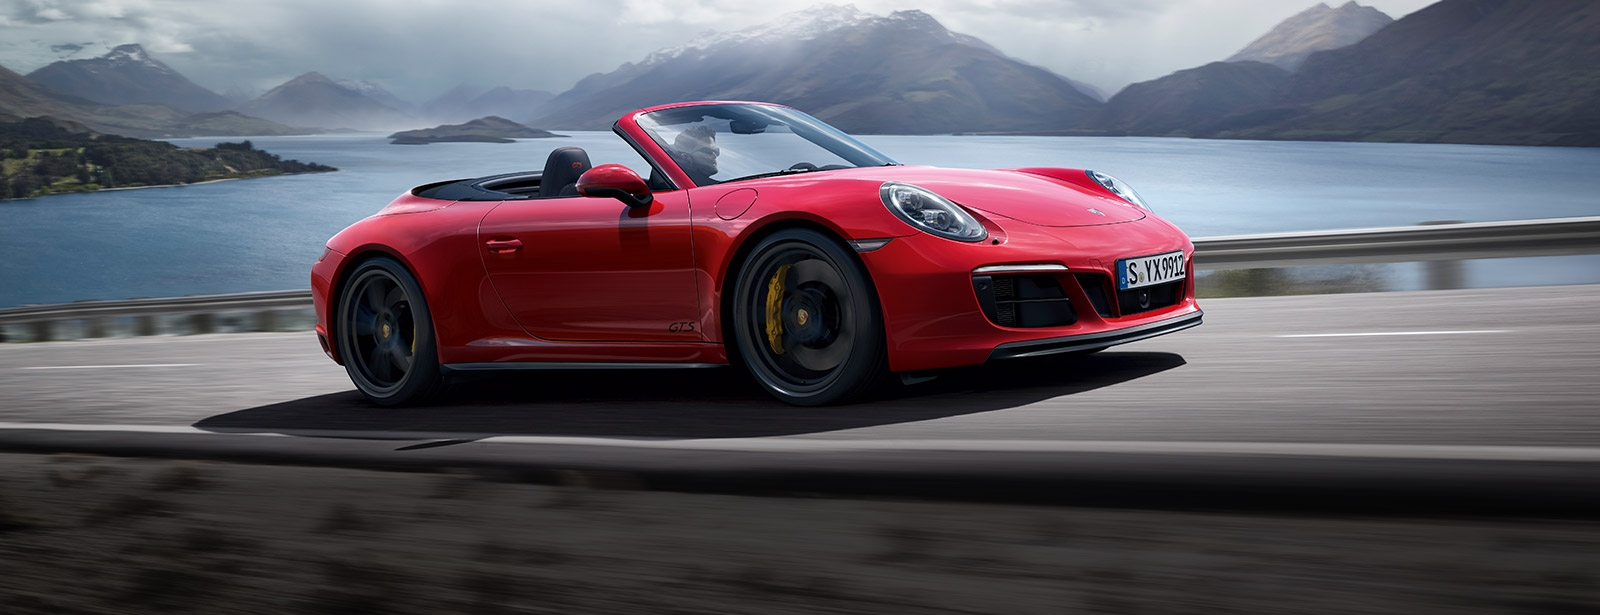 Porsche - 911 Carrera GTS Cabriolet - Driven for more.